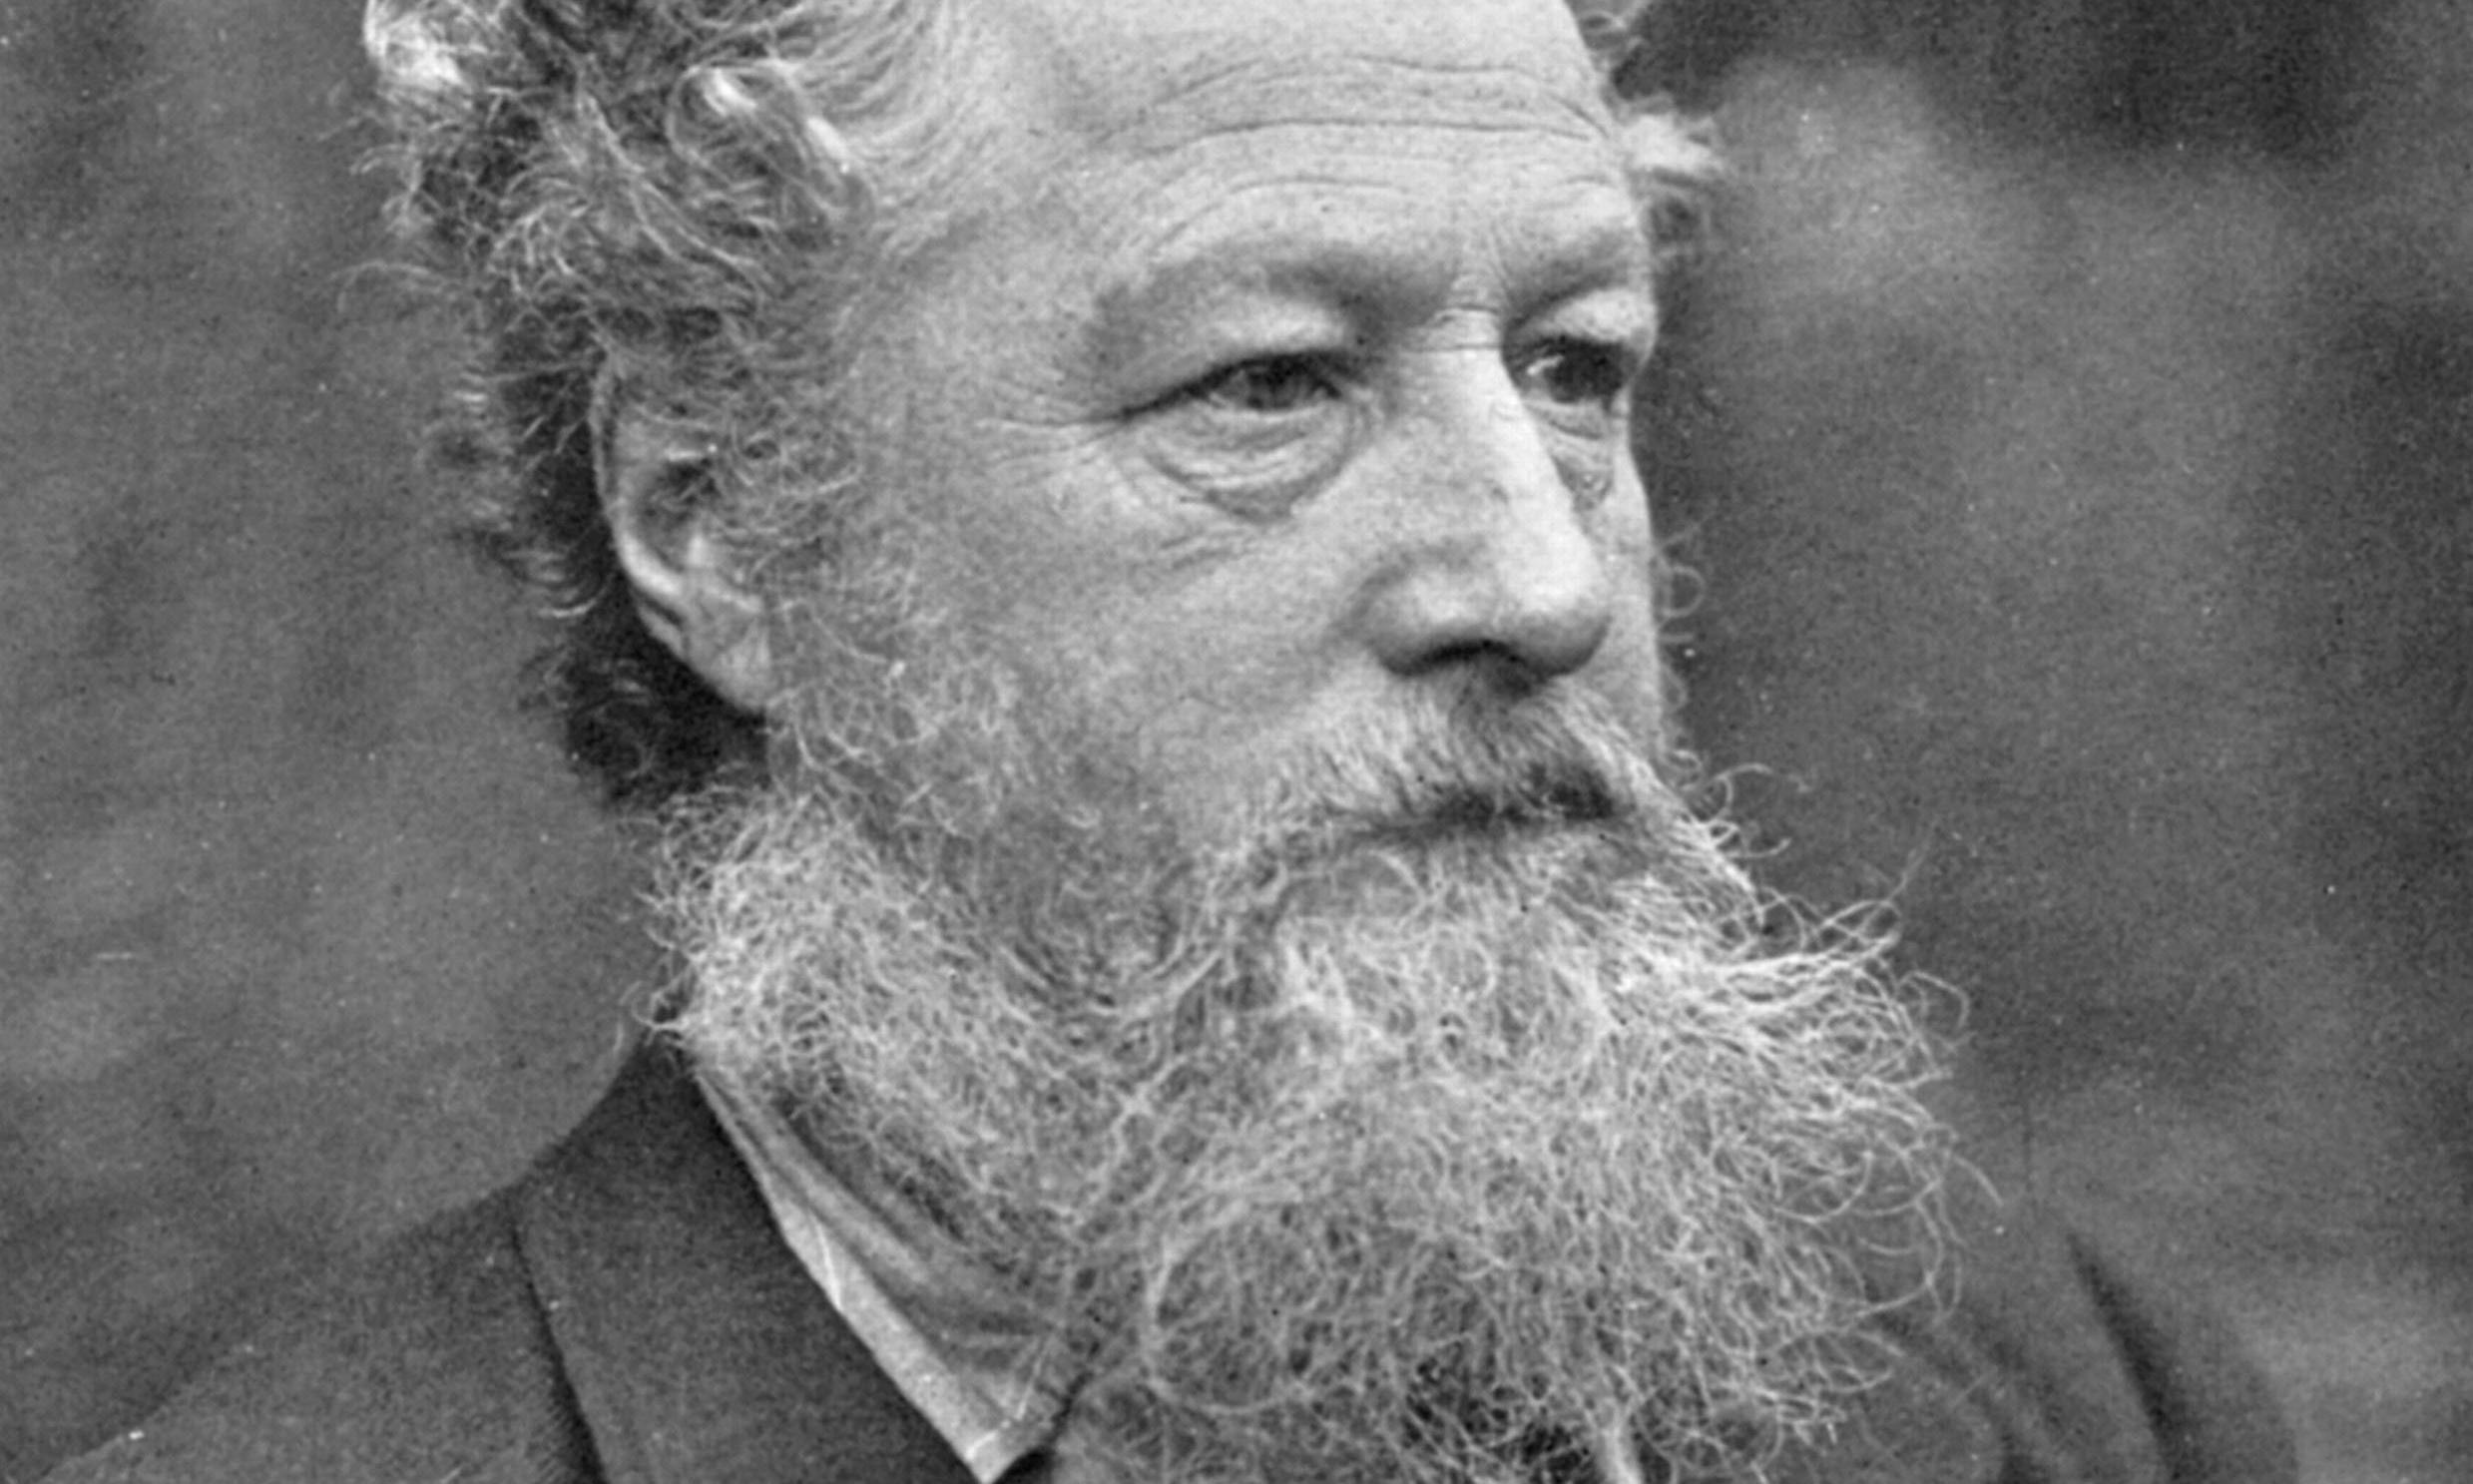 Poem of the week: Apology by William Morris